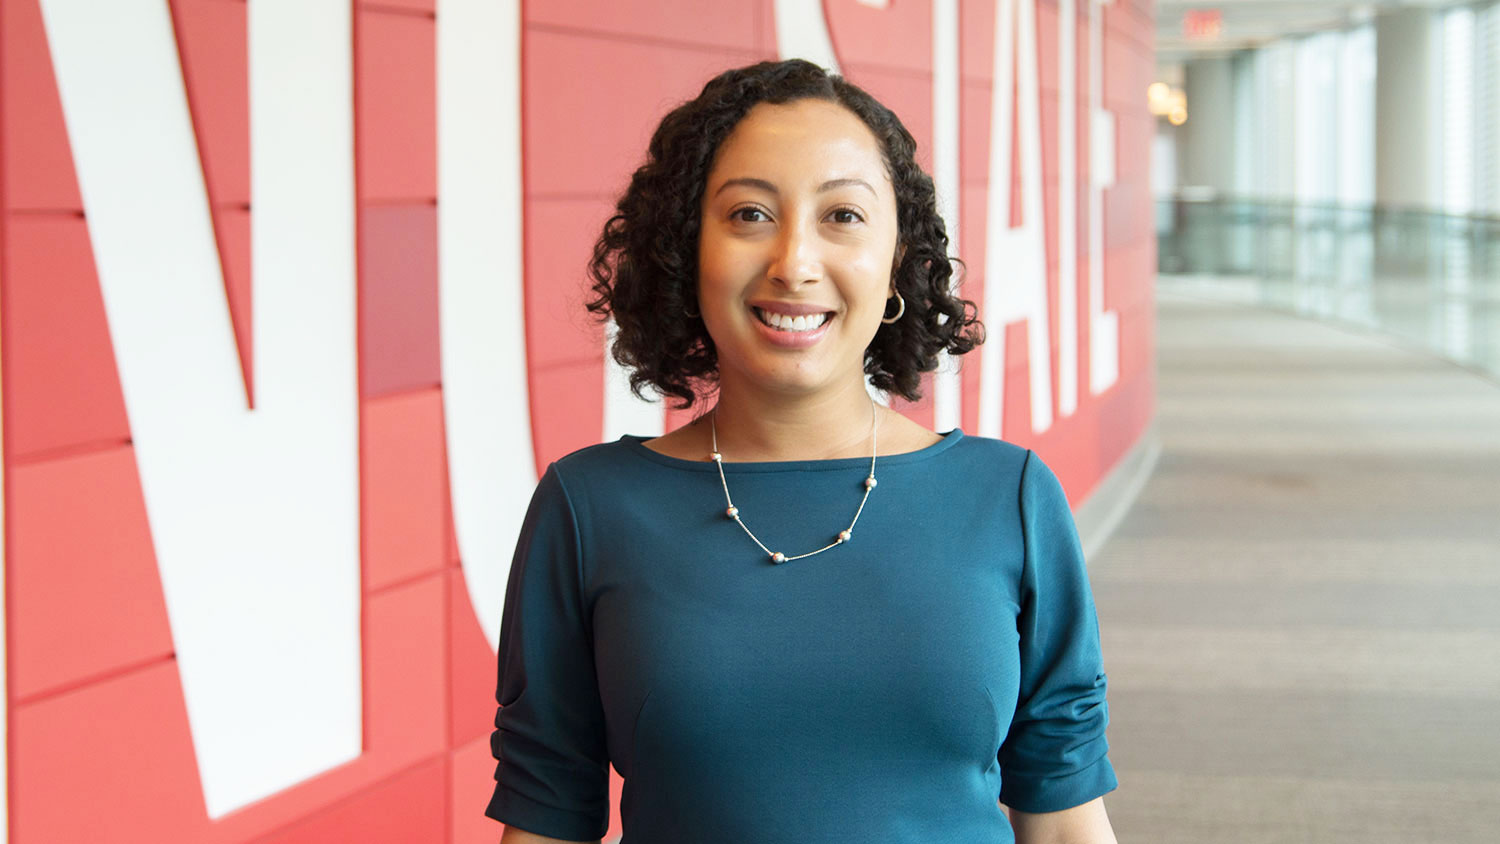 Sachelle Ford, assistant director of the African American Cultural Center at NC State